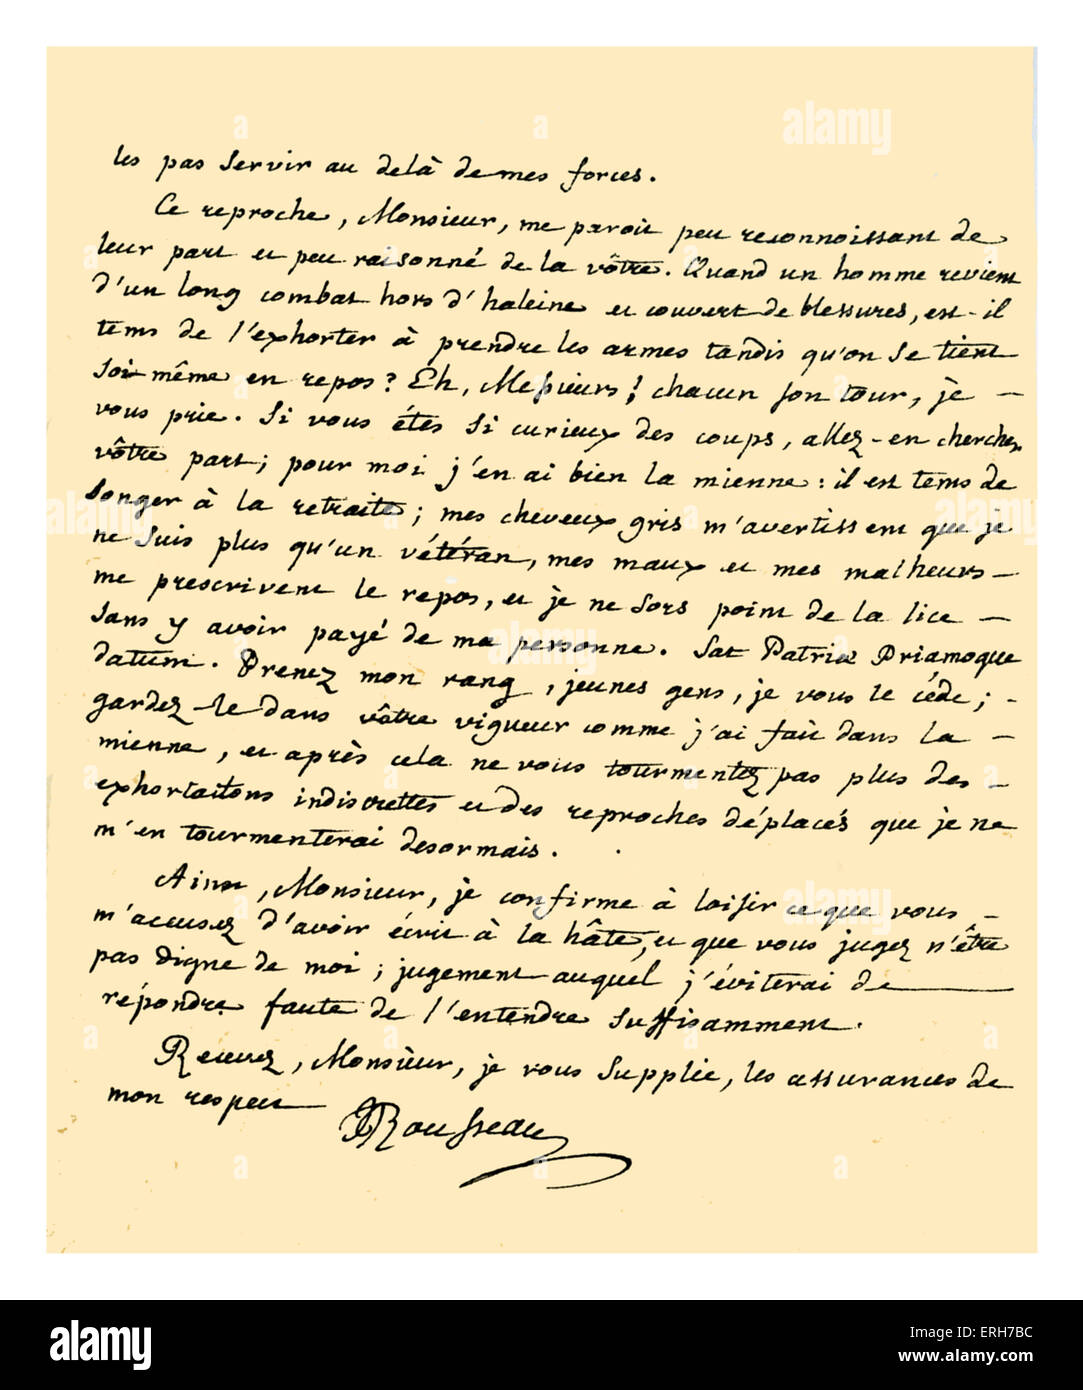 Autograph: Letter from Jean-Jacques Rousseau without an addressee, stating his reasons for not writing further in - Stock Image